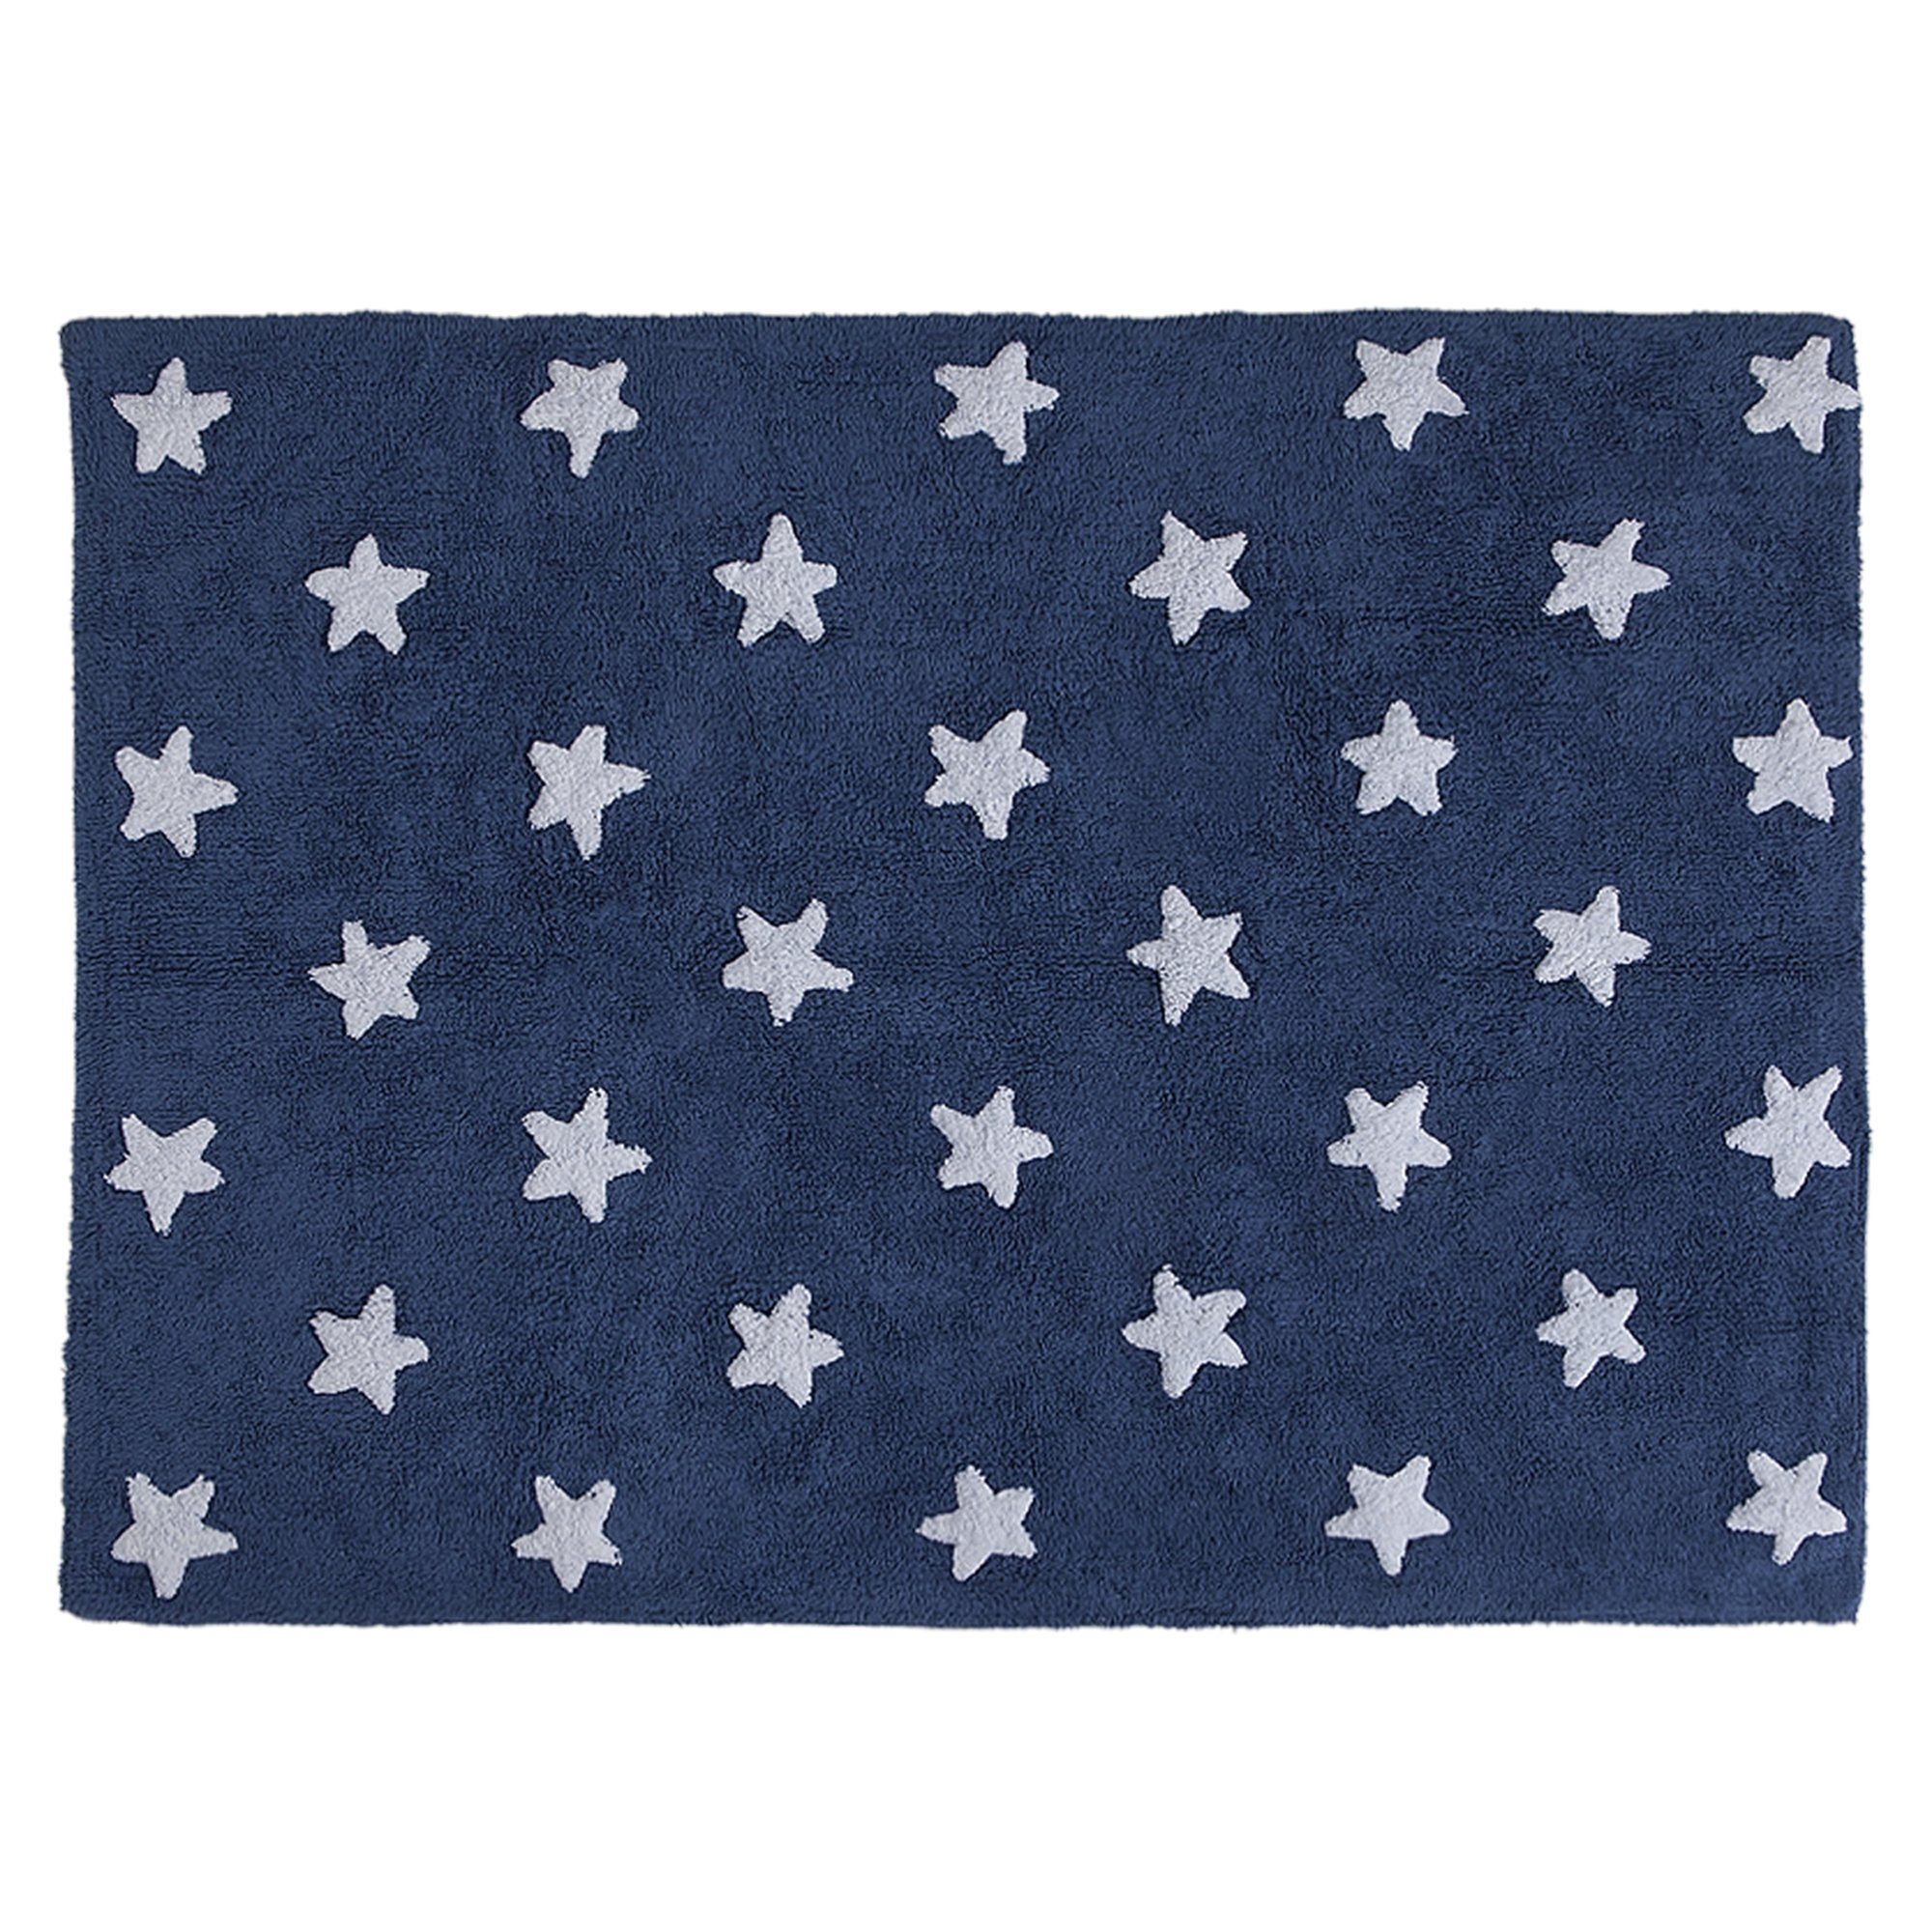 Lorena Canals Stars Machine Washable Kids Rug, 4 x 5 Feet, Handmade From 100% Natural Cotton and Non-Toxic Dyes, Perfect for Nursery, Baby, Playroom, or Childrens Rooms, Works for Outdoor or Beach by Lorena Canals